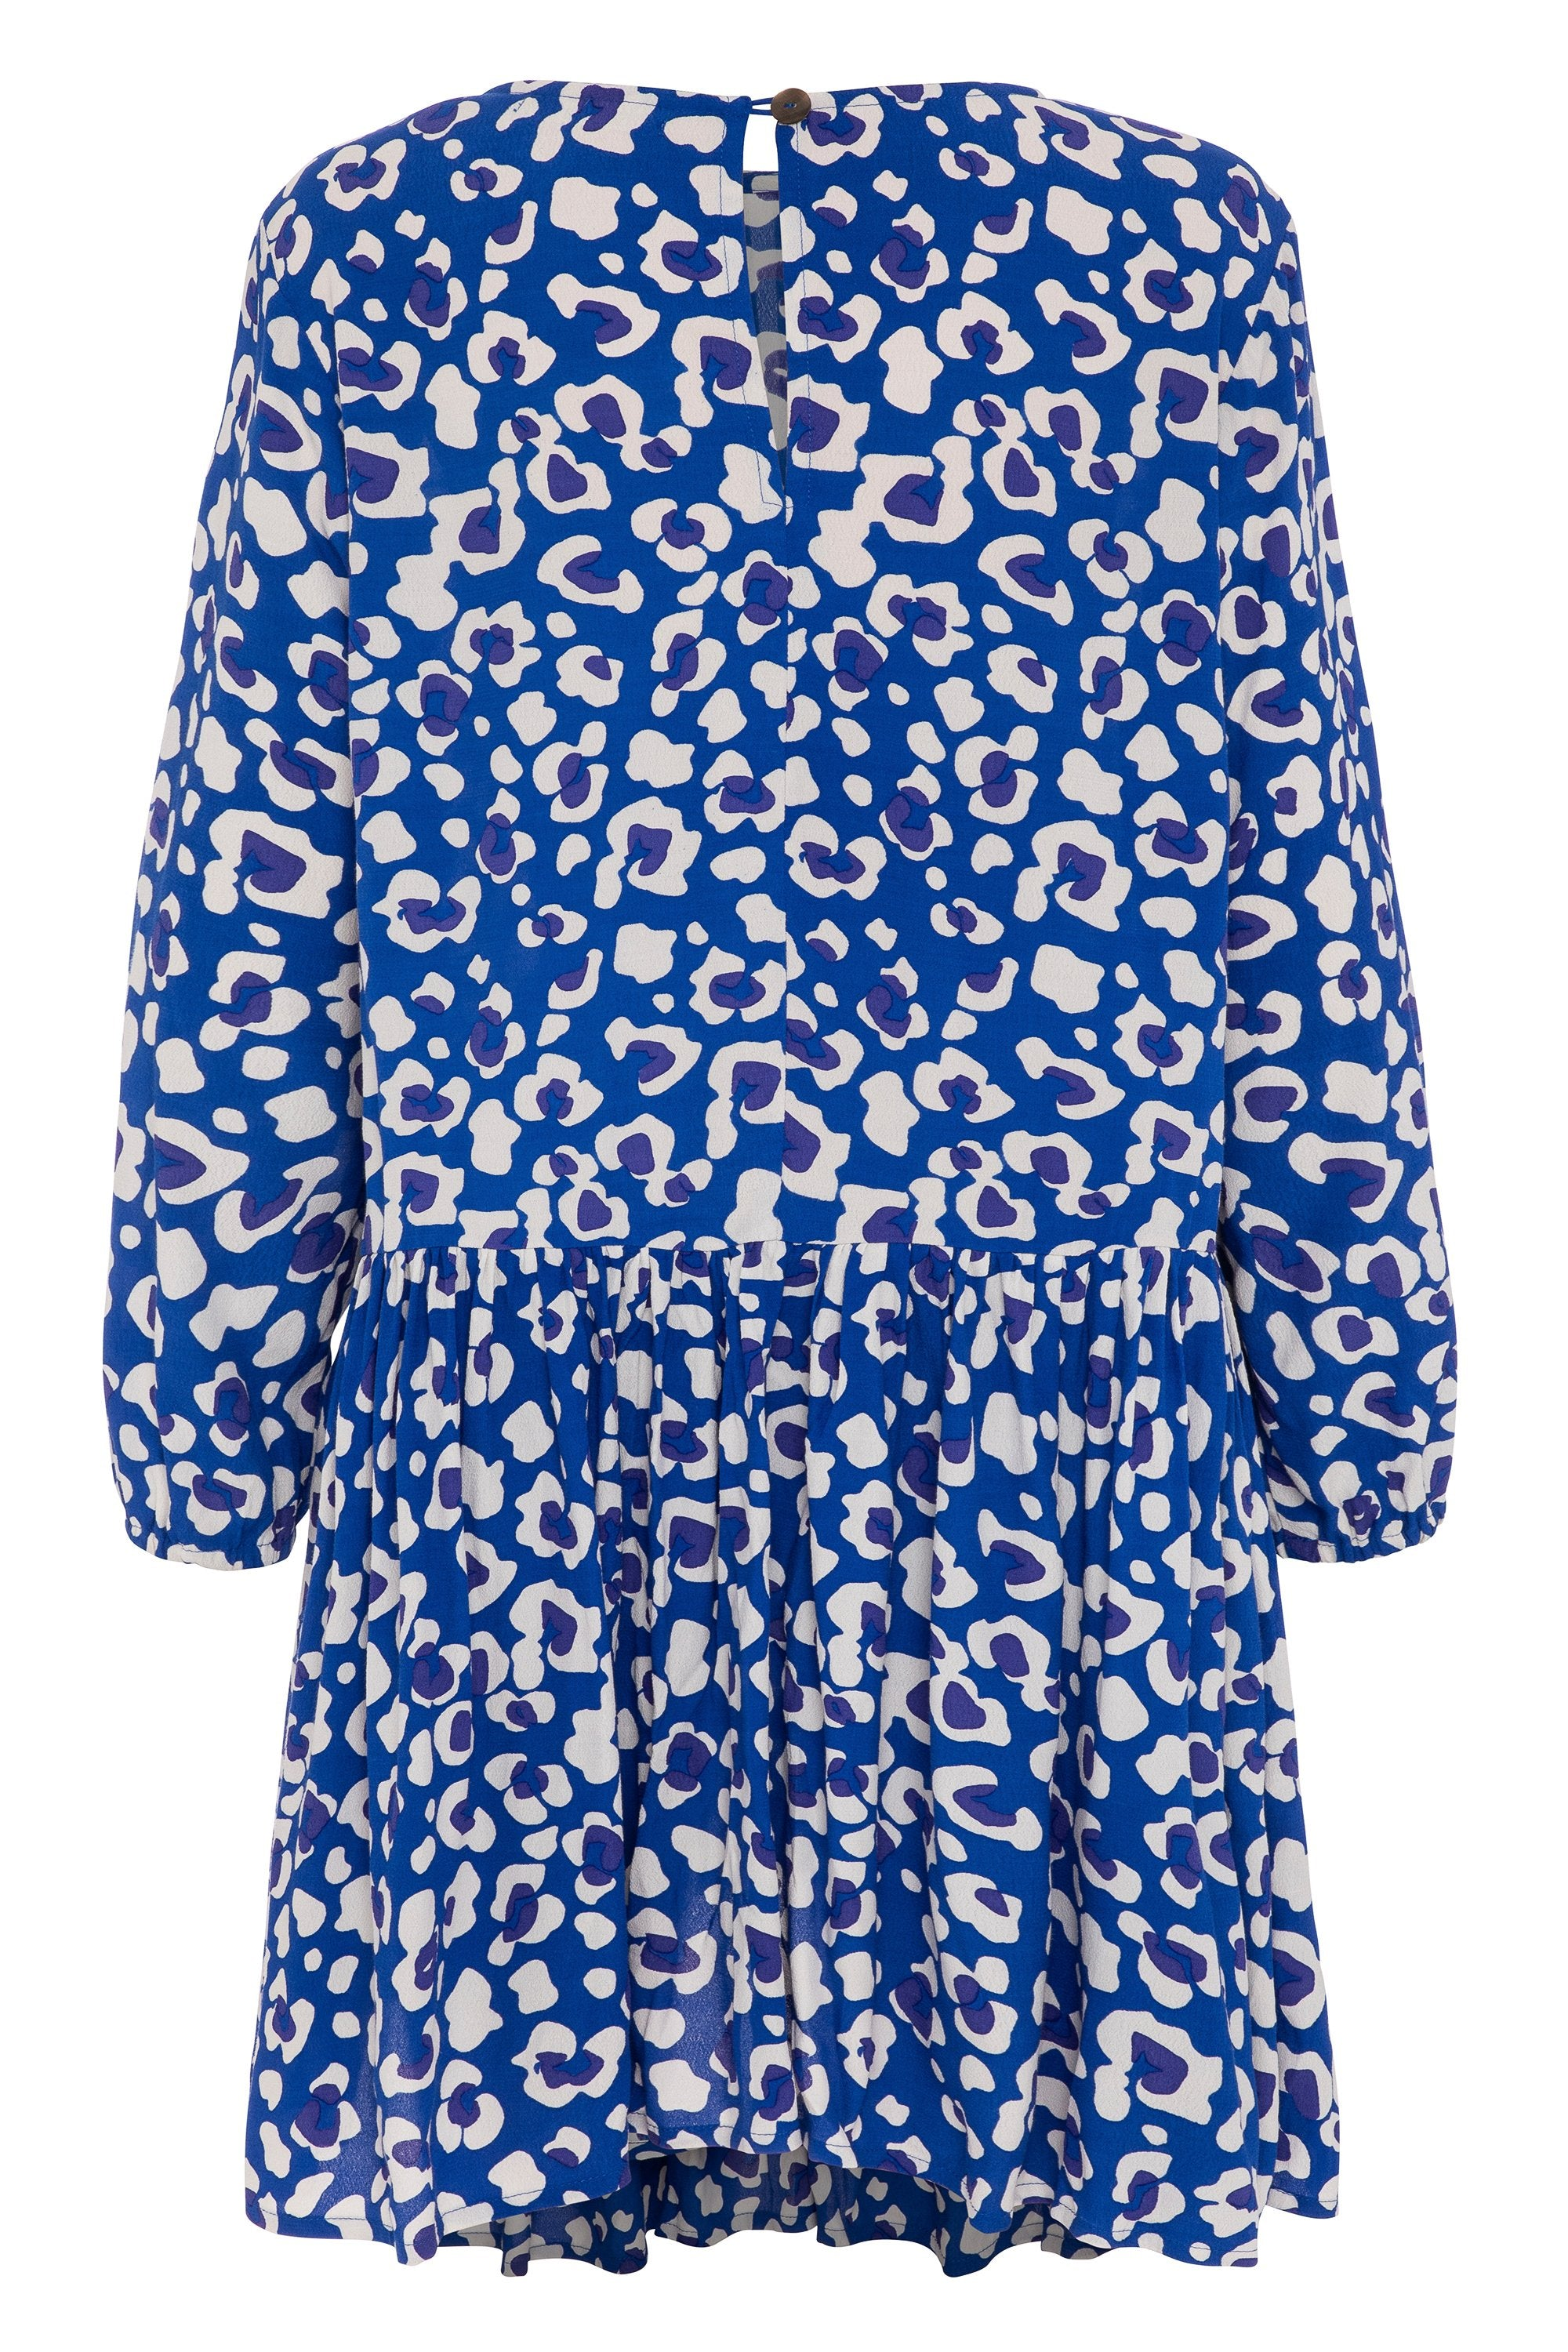 Elsa Dress In Blue Leopard